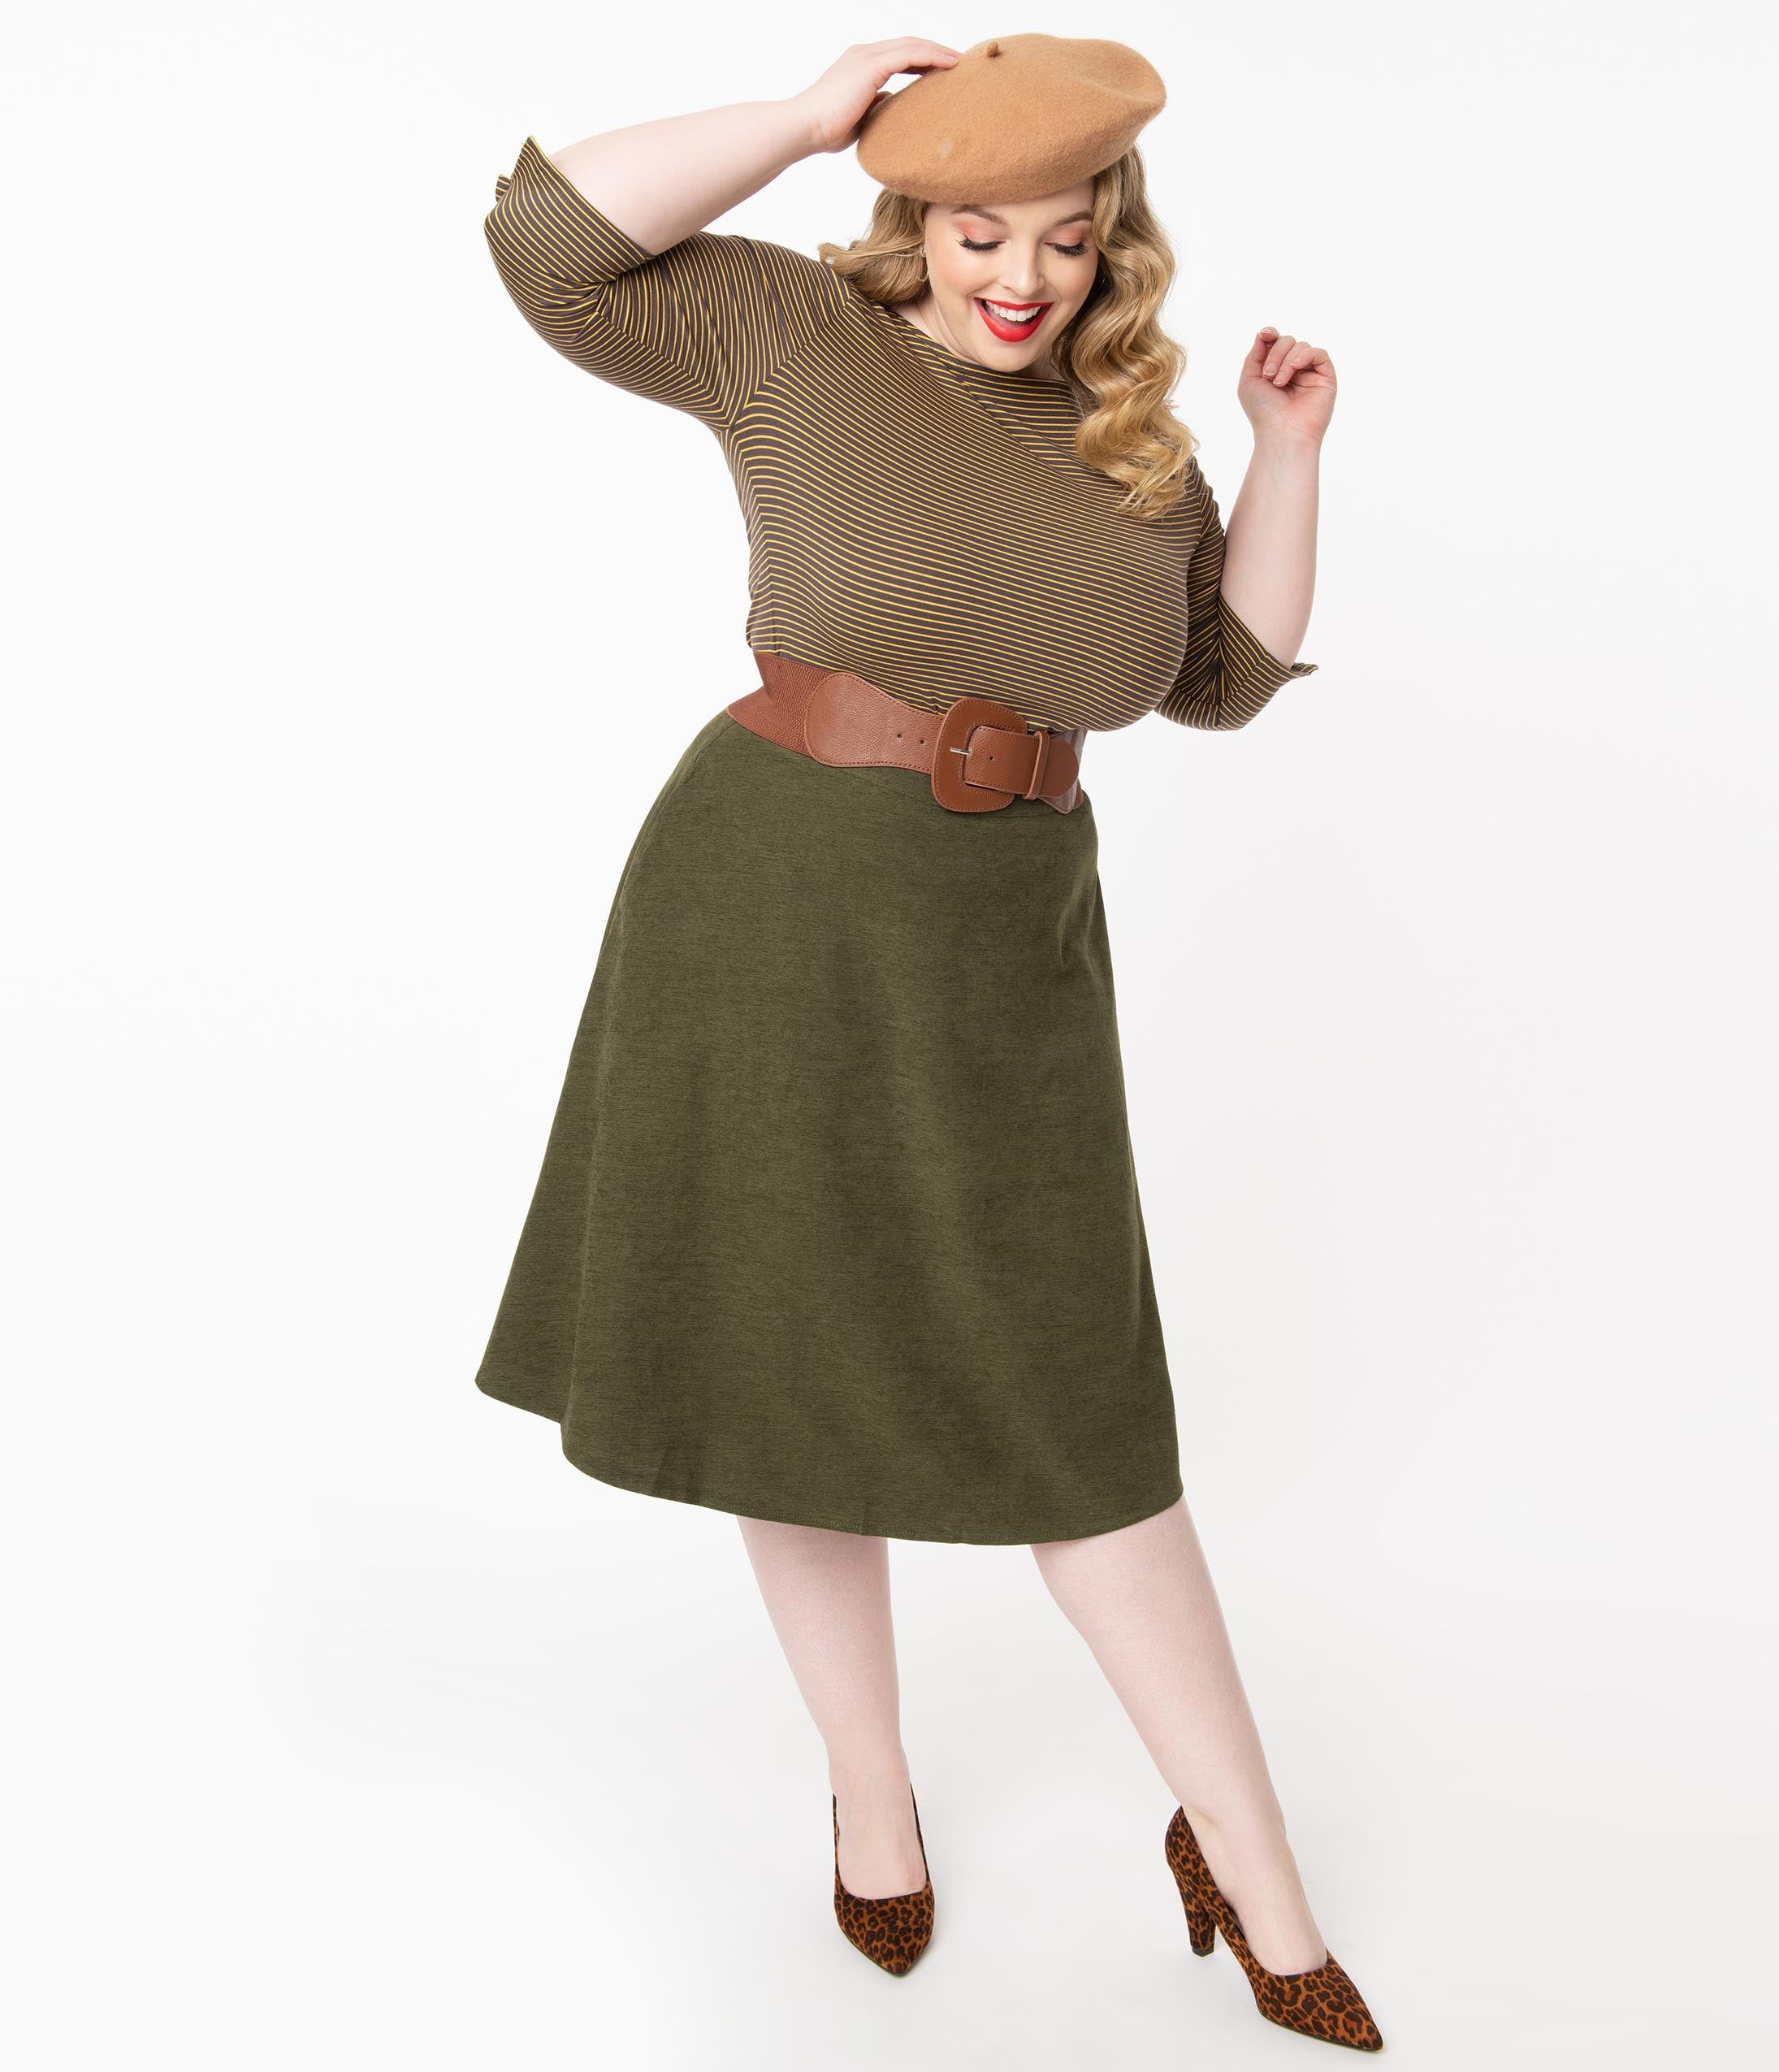 1950s Swing Skirt, Poodle Skirt, Pencil Skirts Plus Size 1950S Olive Green High Waist Sophisticated Swing Skirt $48.00 AT vintagedancer.com